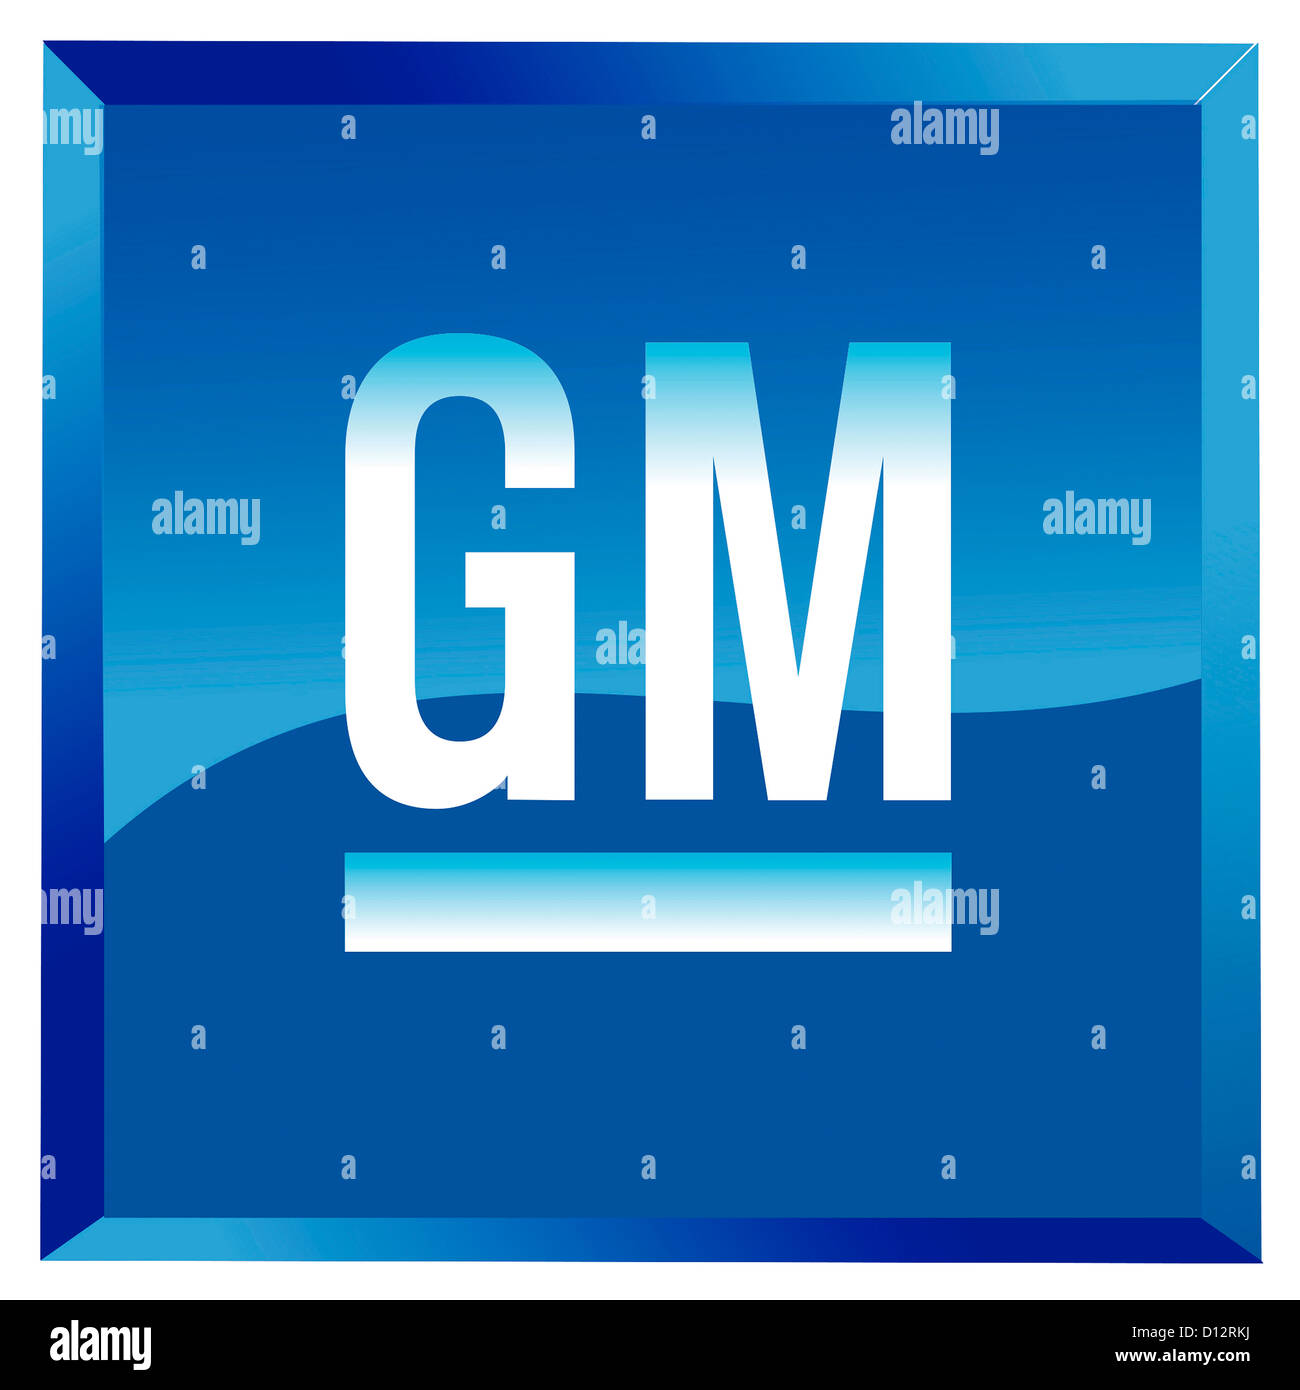 Company logo of the American automobile manufacturer General Motors GM  based in Detroit. - Stock Image